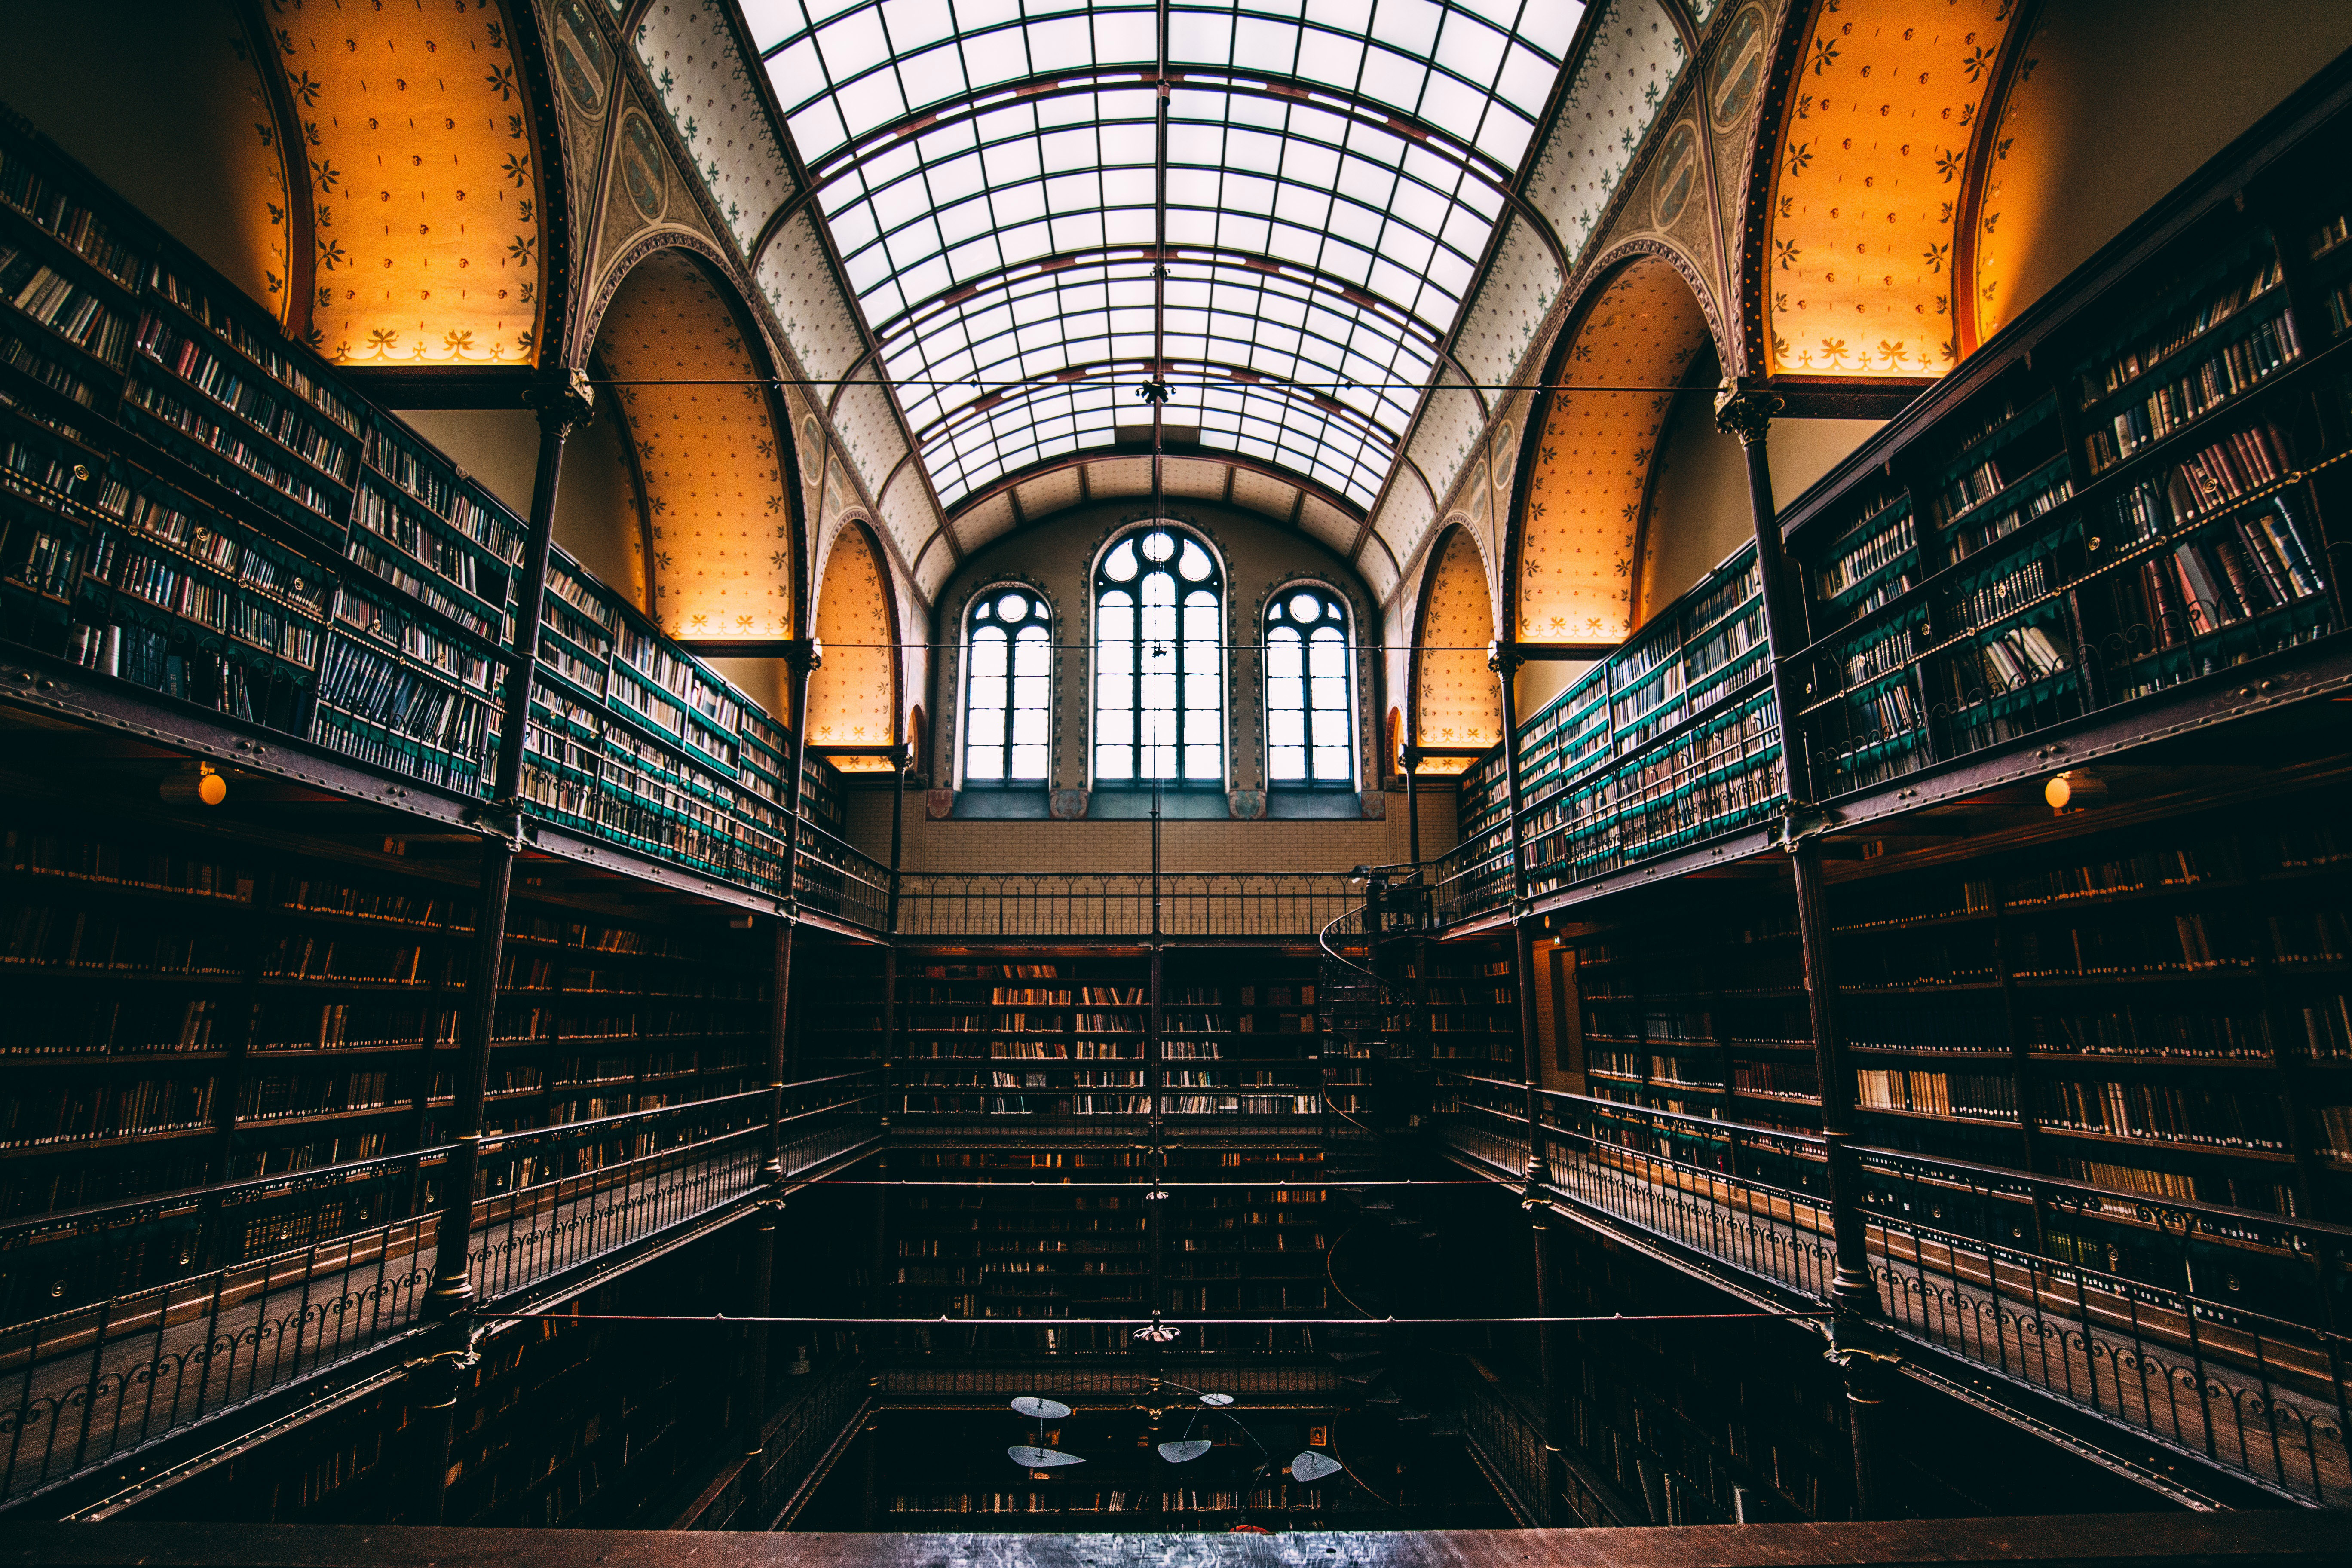 Big Library in Amsterdam, Netherlands image - Free stock